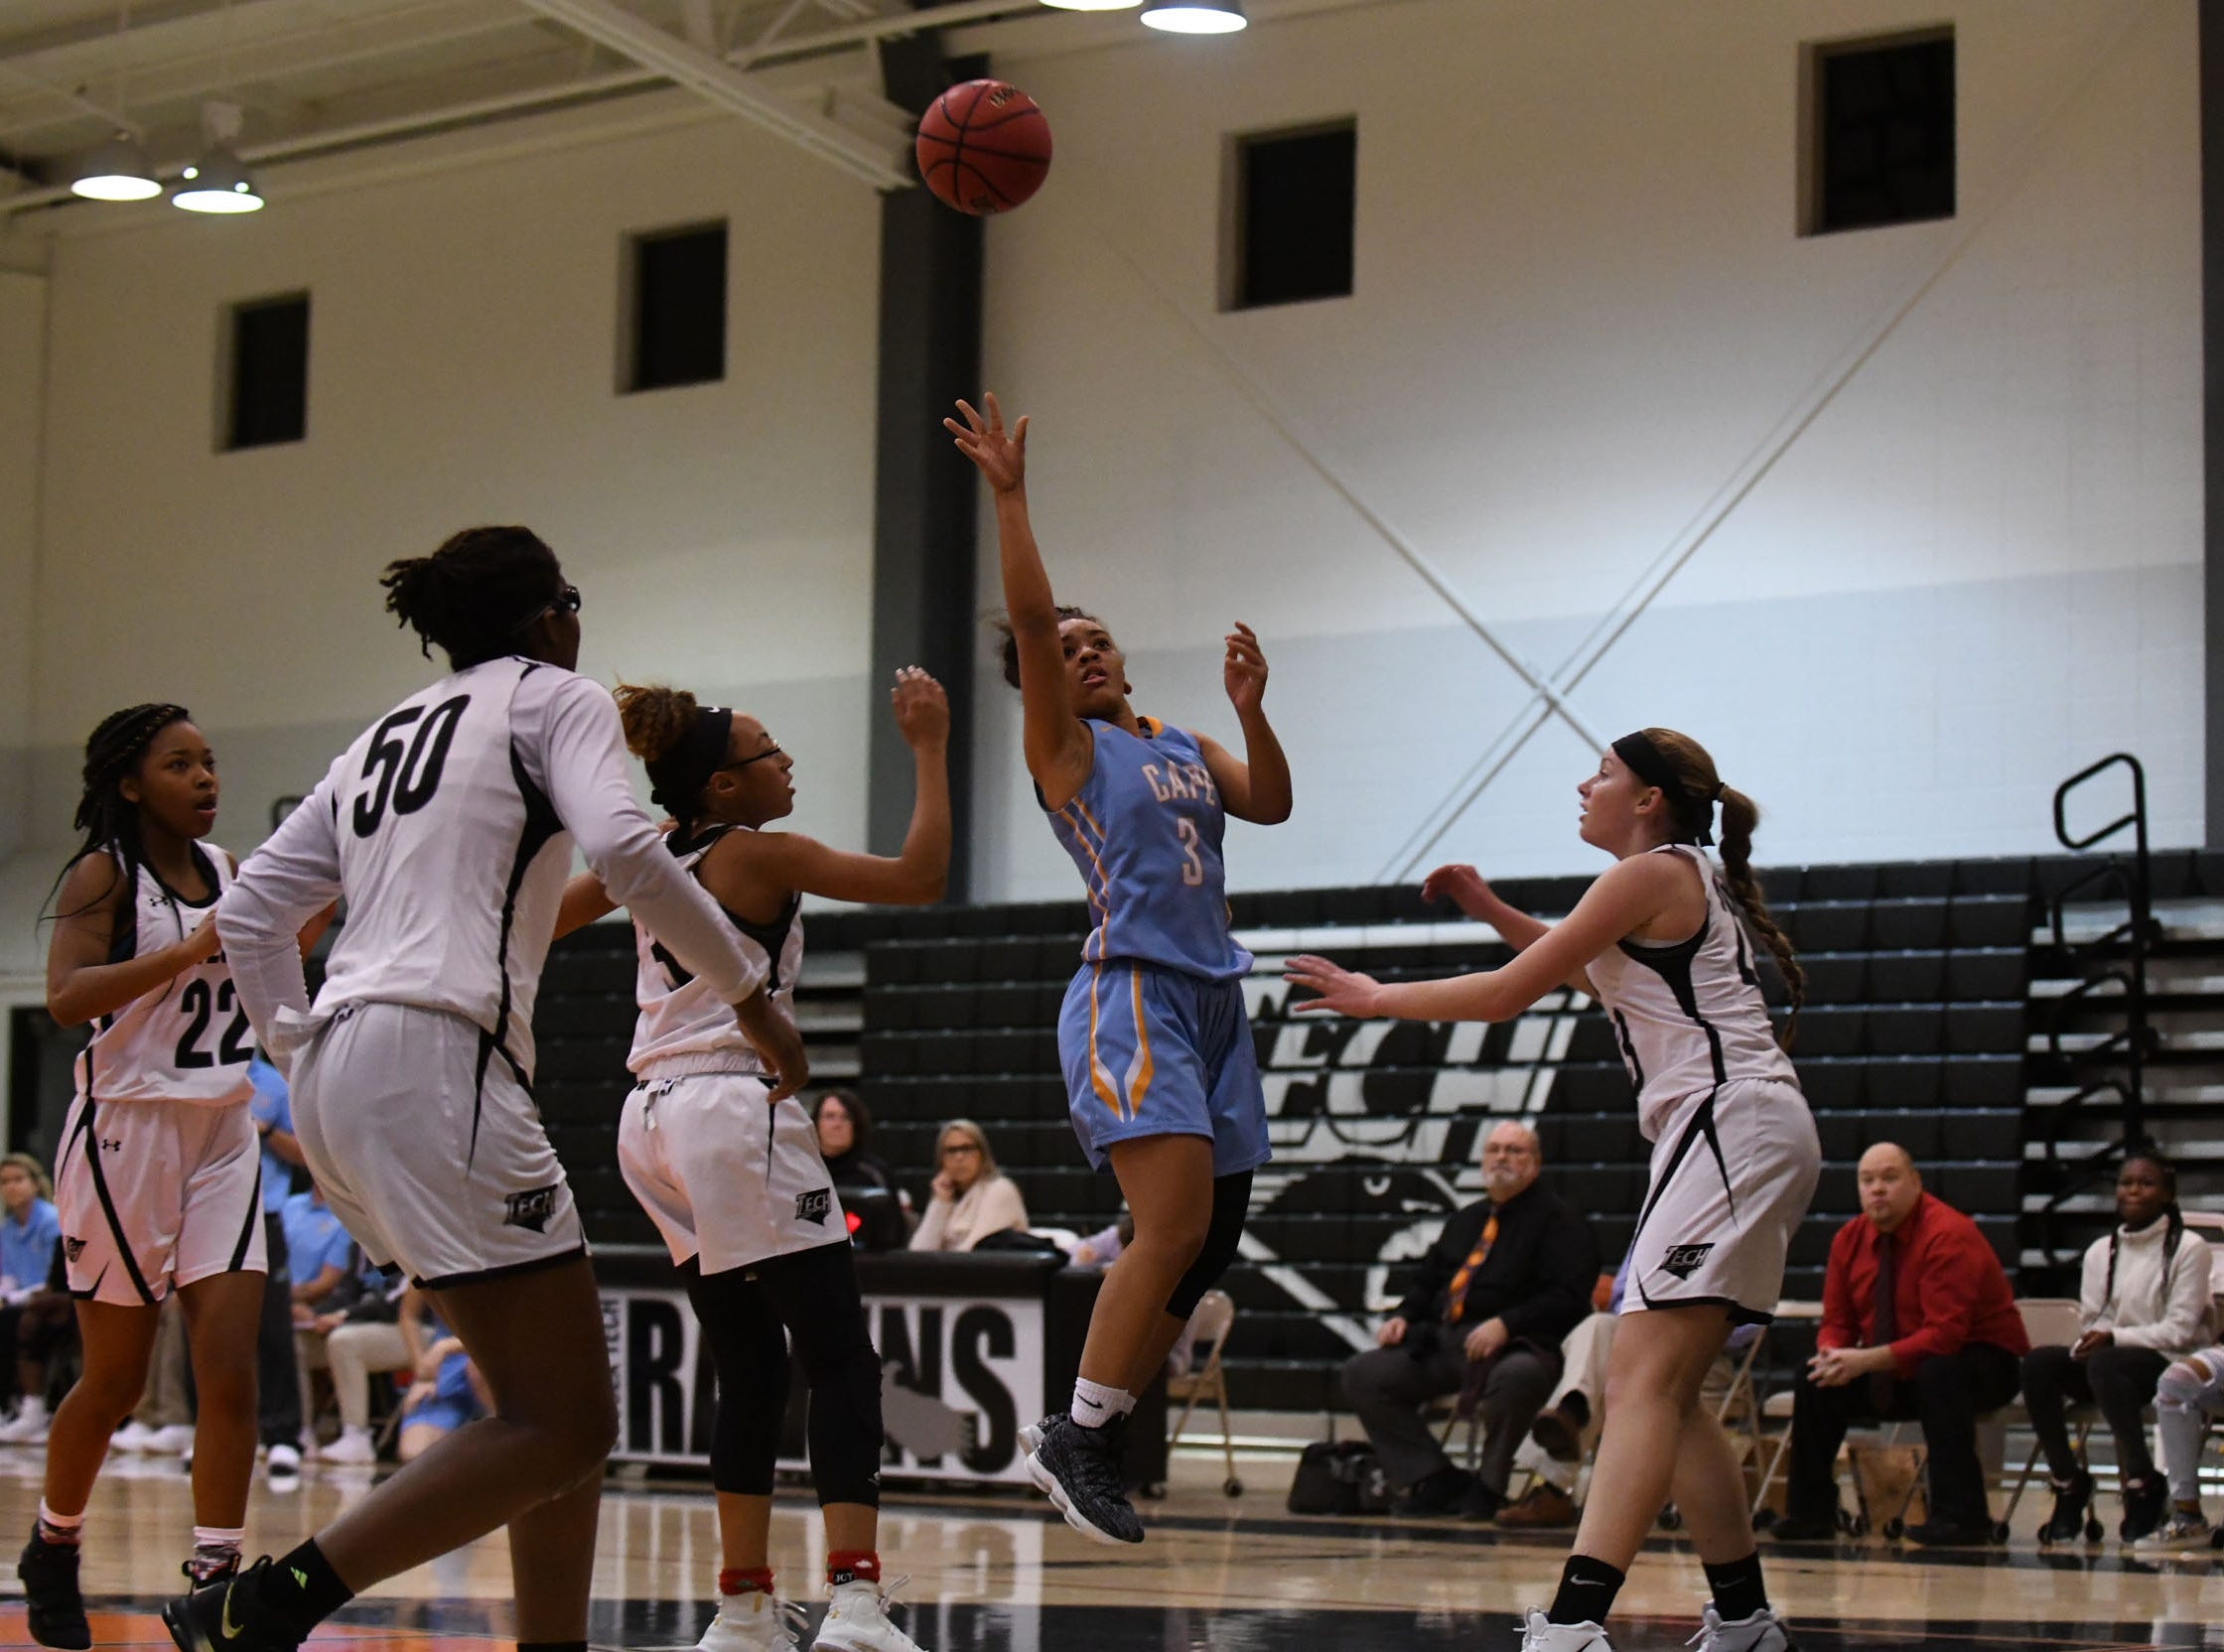 Cape Henlopen's Dania Cannon with the shot against Sussex Tech on Wednesday, Jan. 2, 2019.